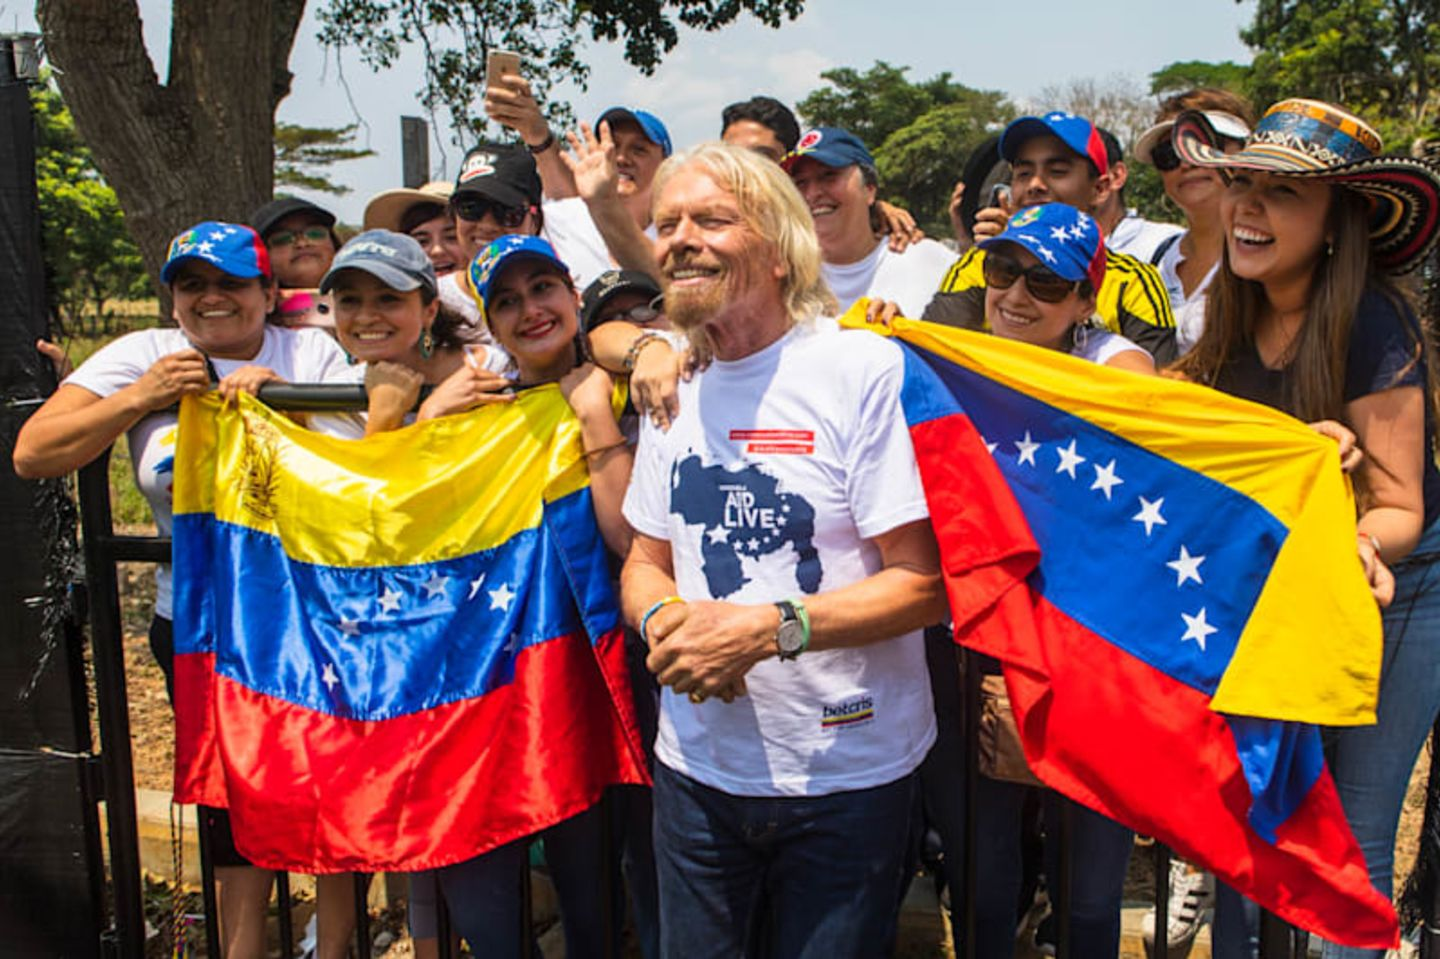 Richard Branson in front of a crowd of people holding the flag of Venezuela